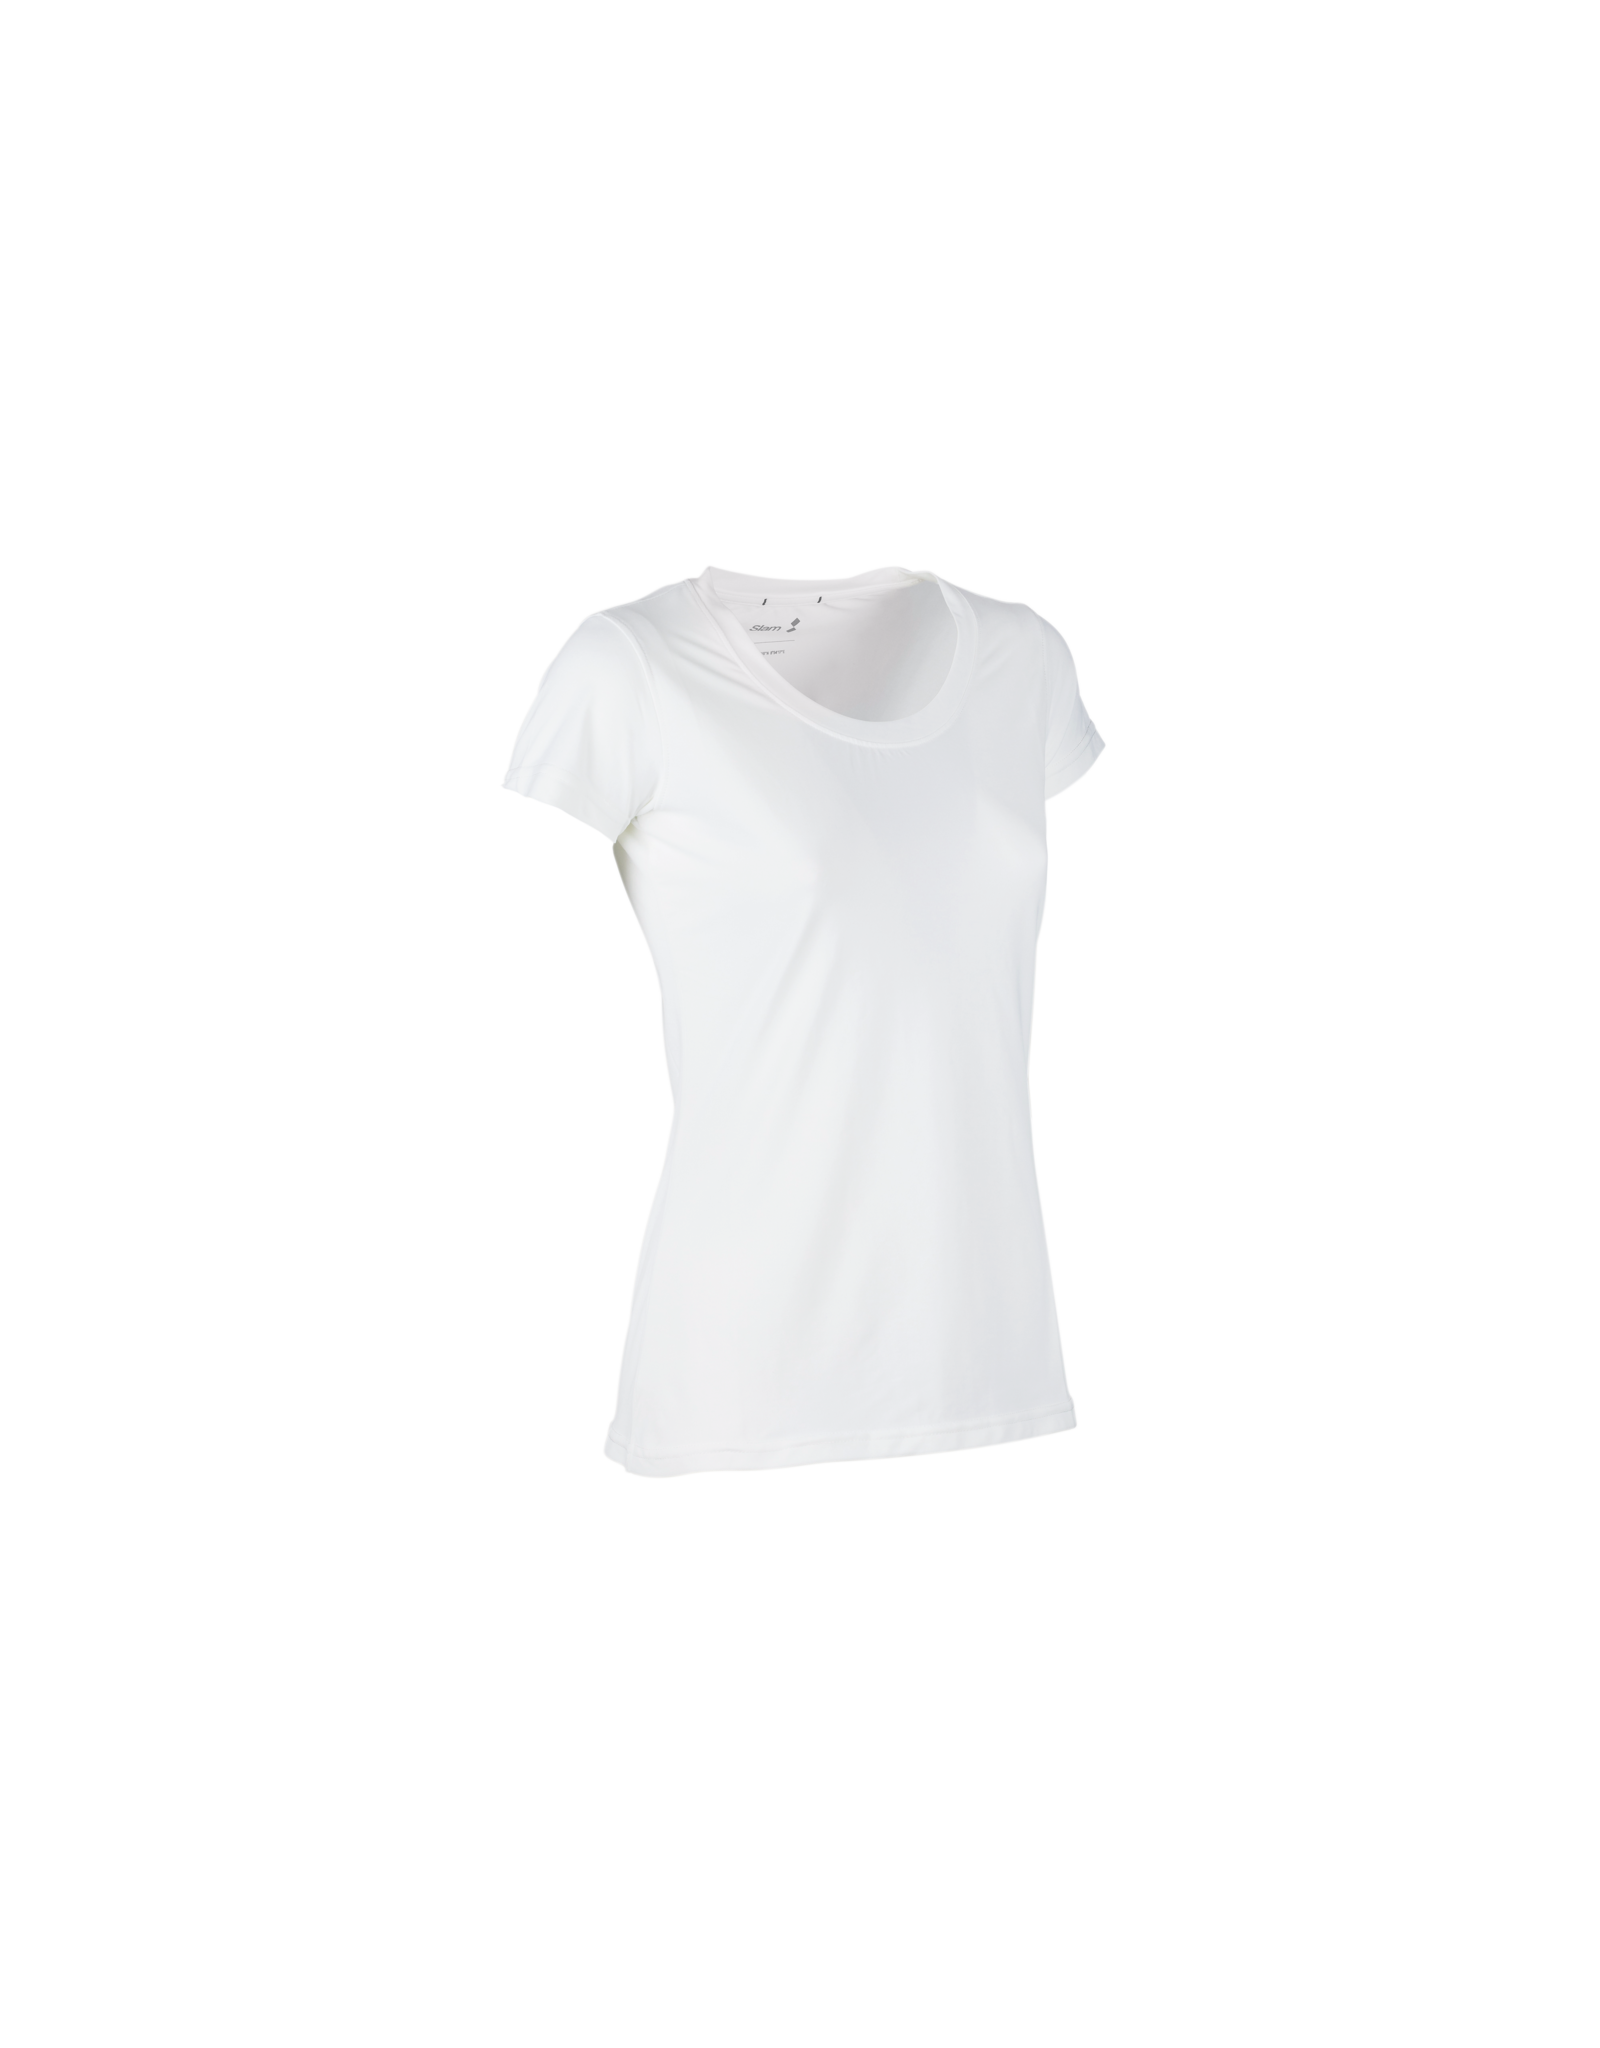 Slam Tech Alliot t-shirt - White (100)